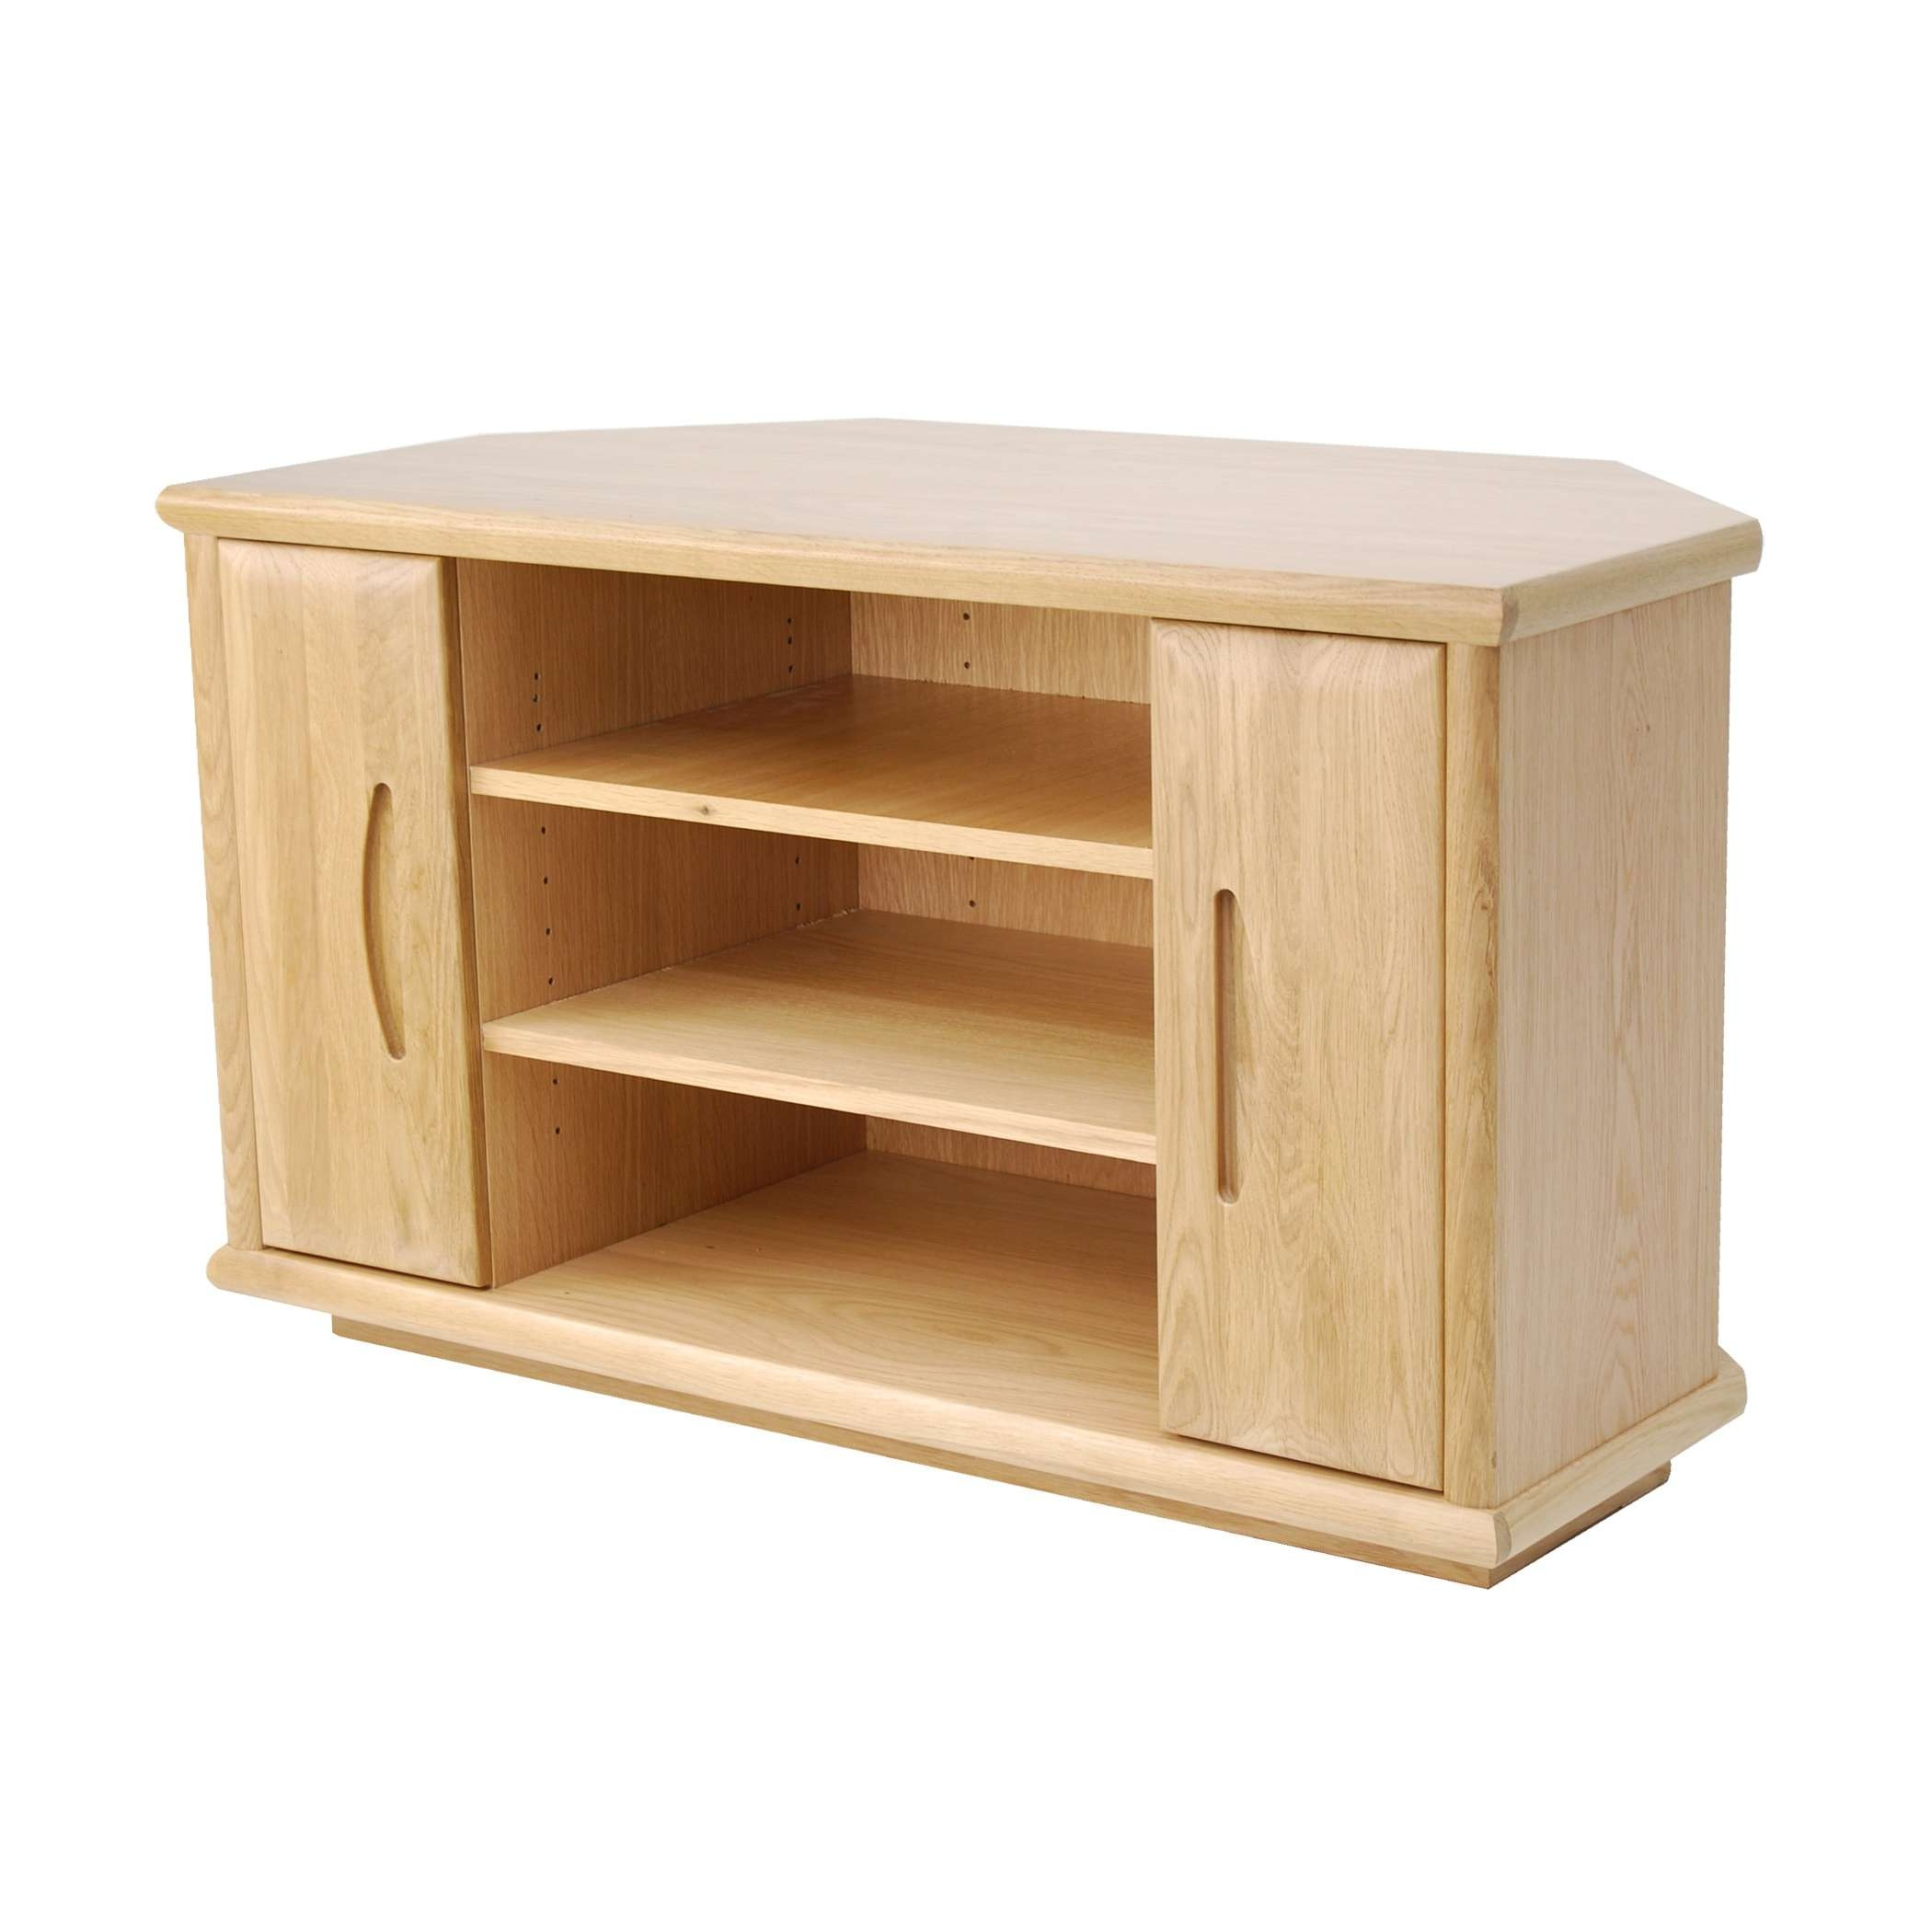 Oak Corner Tv Stand | Gola Furniture Uk In Oak Tv Cabinets With Doors (View 10 of 20)